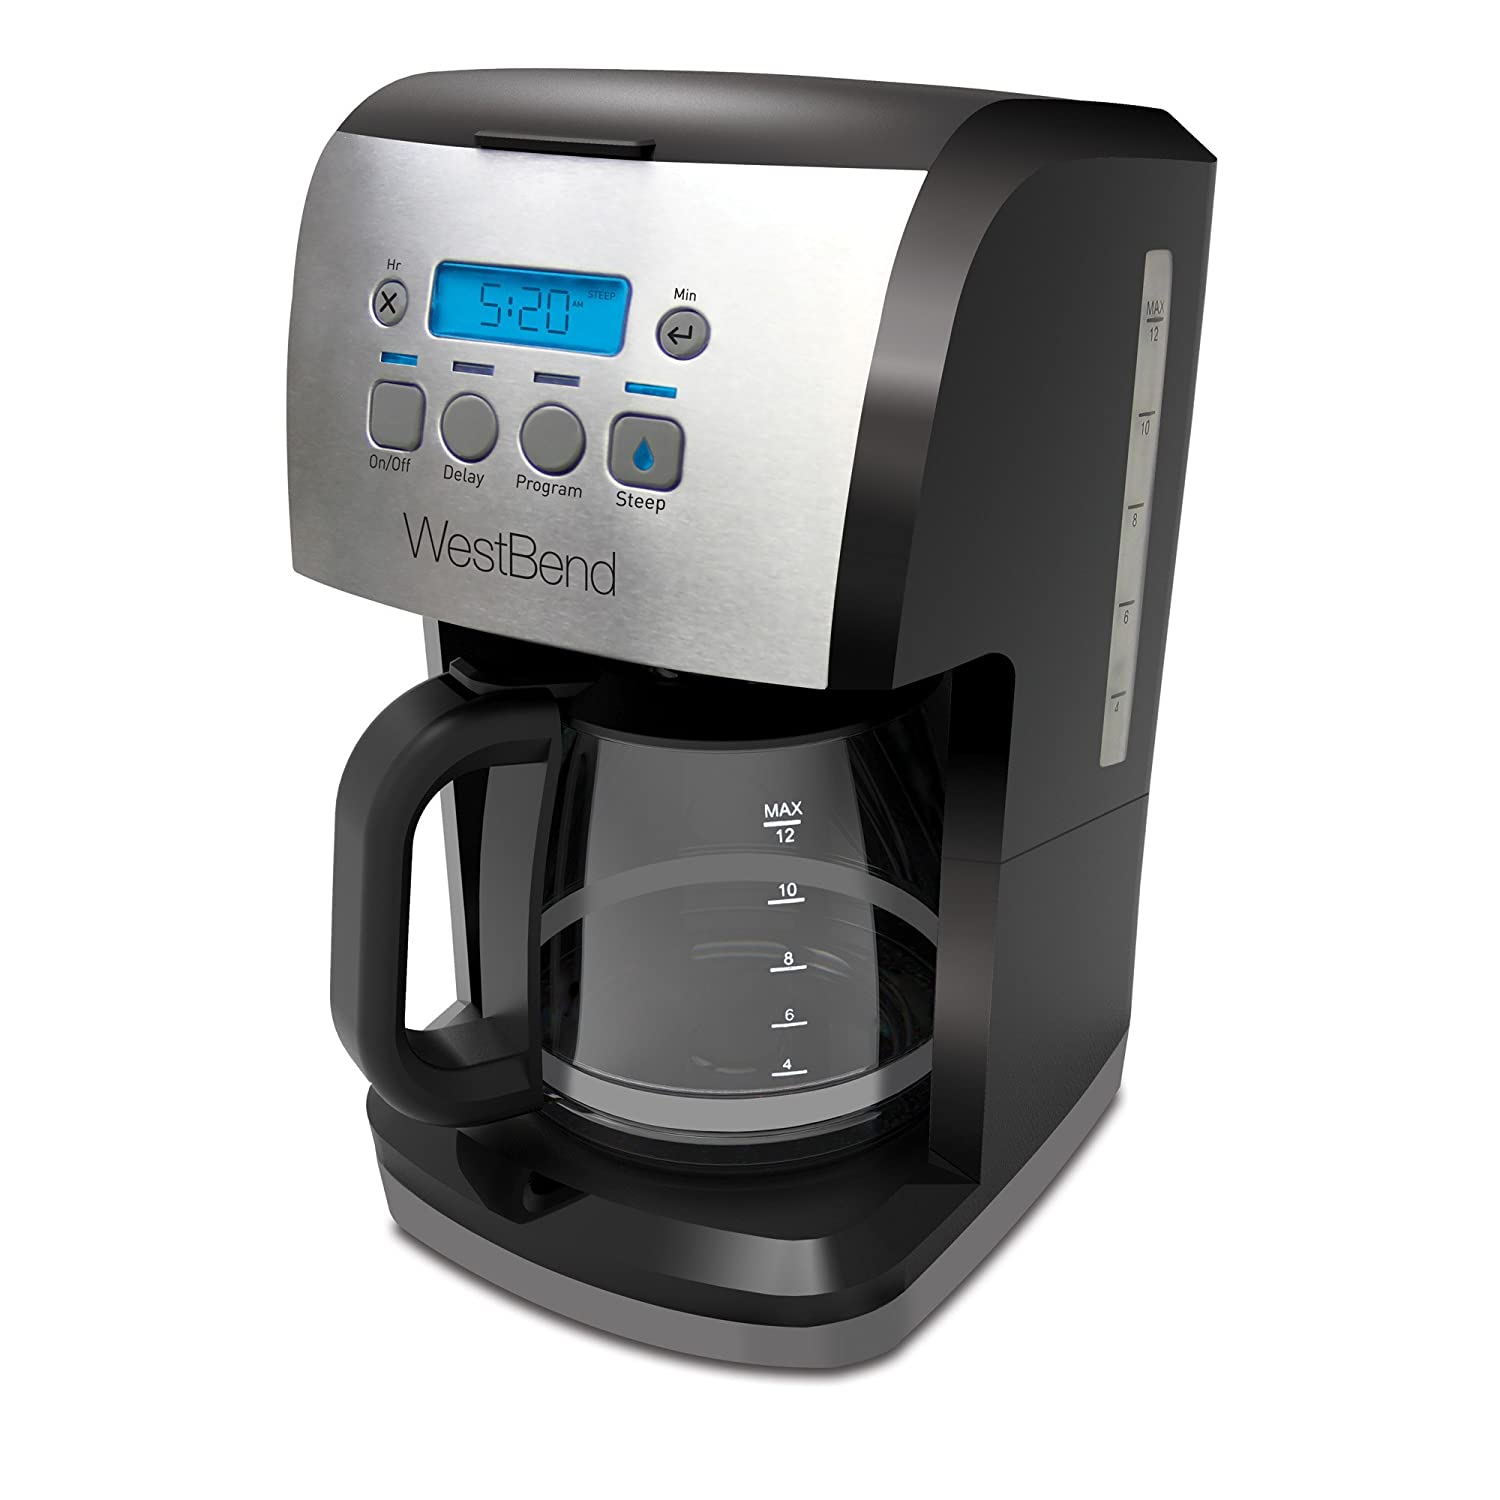 West Bend 56911 Steep & Brew Coffee Maker Features Programmable Auto Shut-Off with Bold Settings Permanent Mesh Filter and Glass Carafe, 12-Cup, Black